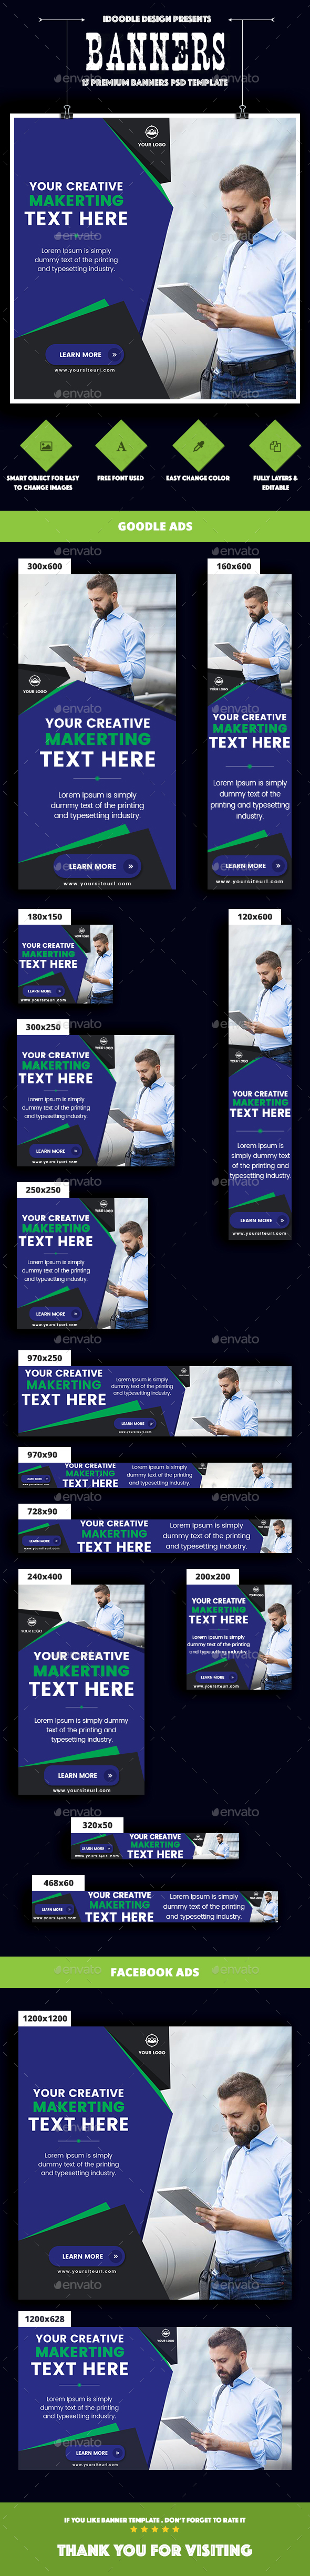 Banner Ads - Multipurpose, Business, Corporate Banners Ad - Banners & Ads Web Elements